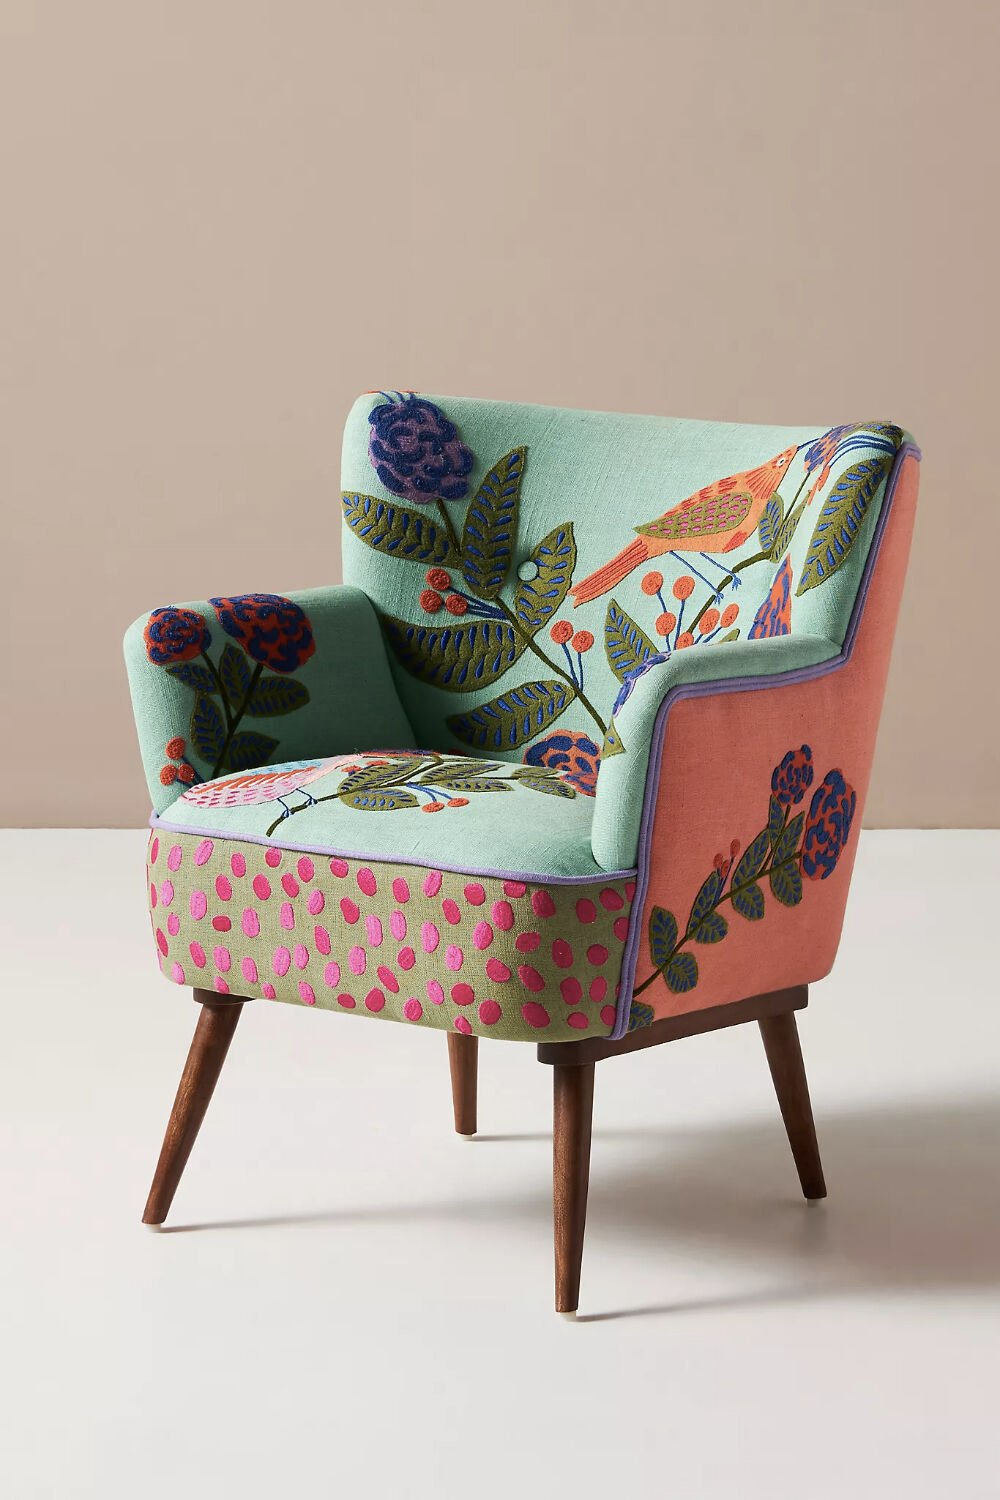 cool eclectic 3. anthropologie chair.jpg